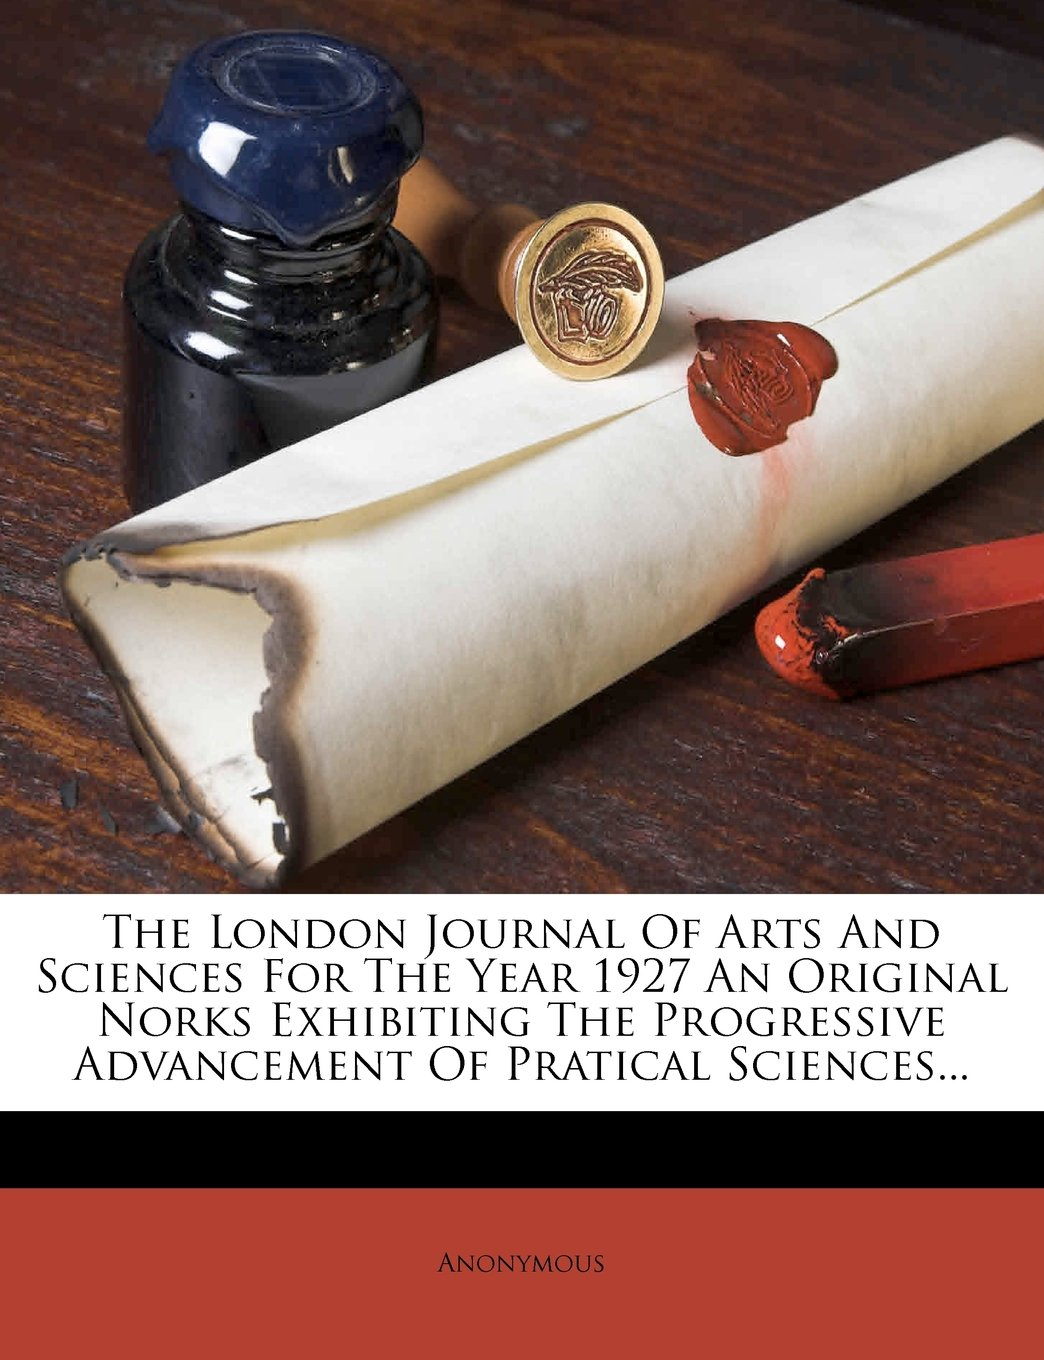 Download The London Journal Of Arts And Sciences For The Year 1927 An Original Norks Exhibiting The Progressive Advancement Of Pratical Sciences... pdf epub